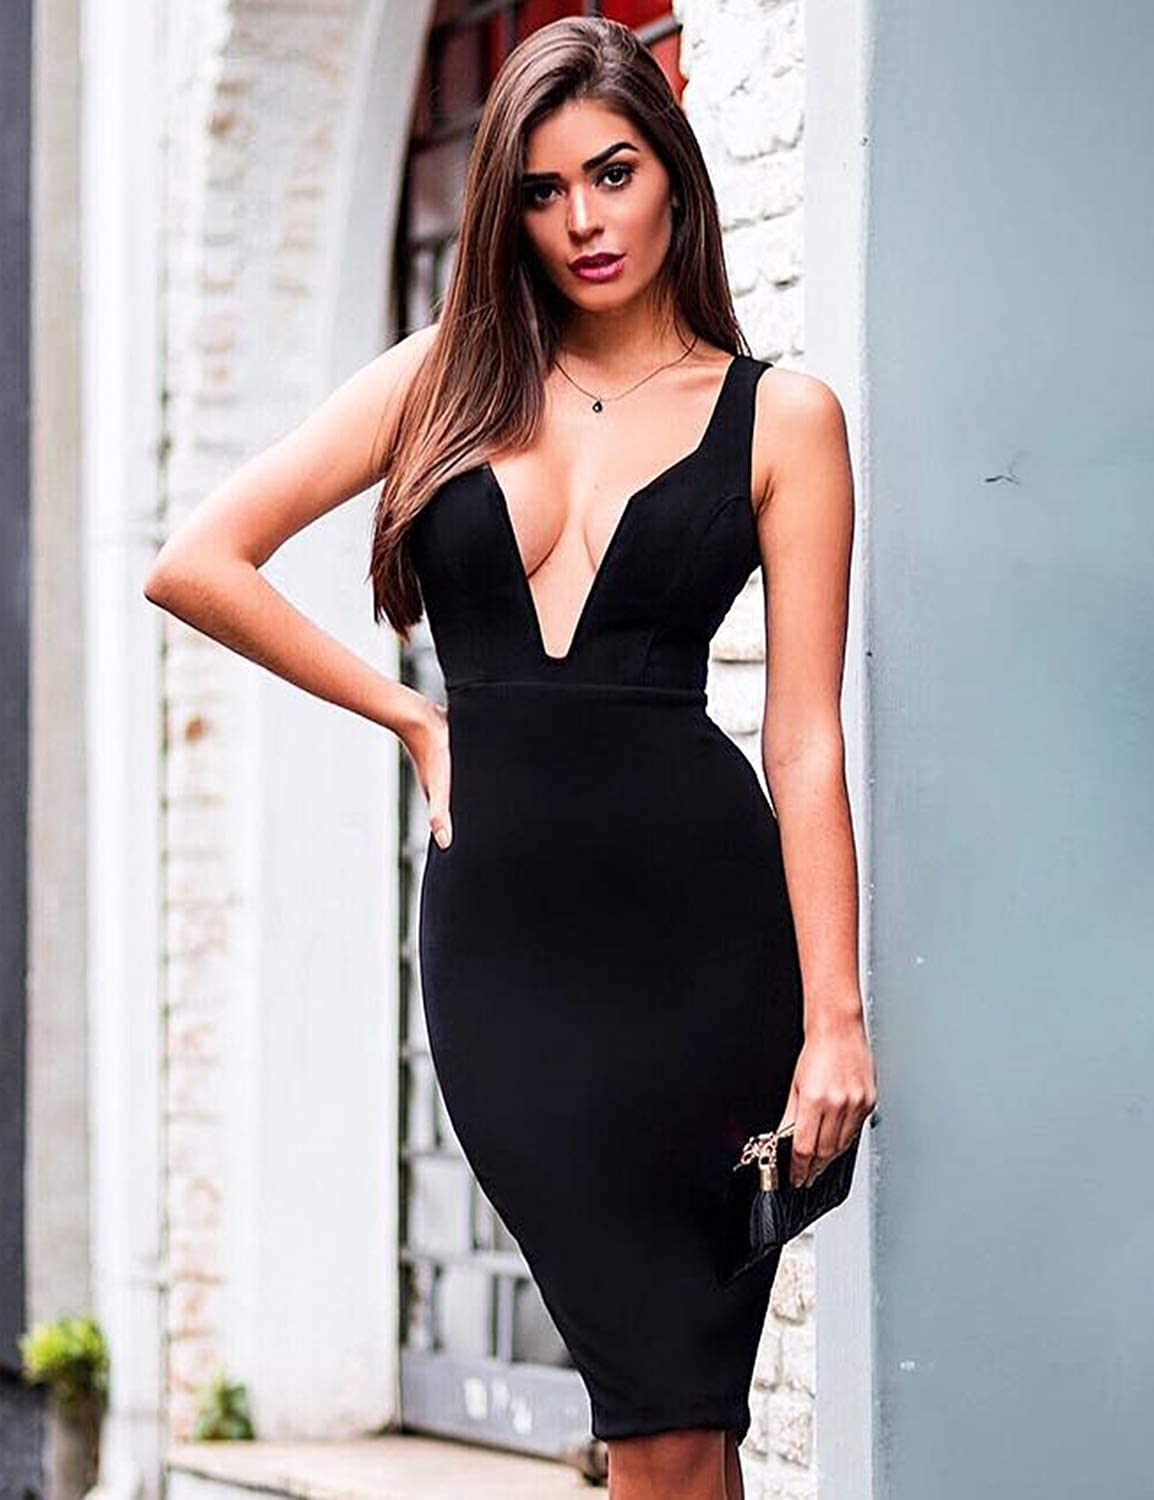 44d3f30e446 Hego Women's Black One Shoulder Ruffles Bandage Bodycon Club Night Out  Dresses for Special Occasion H5630